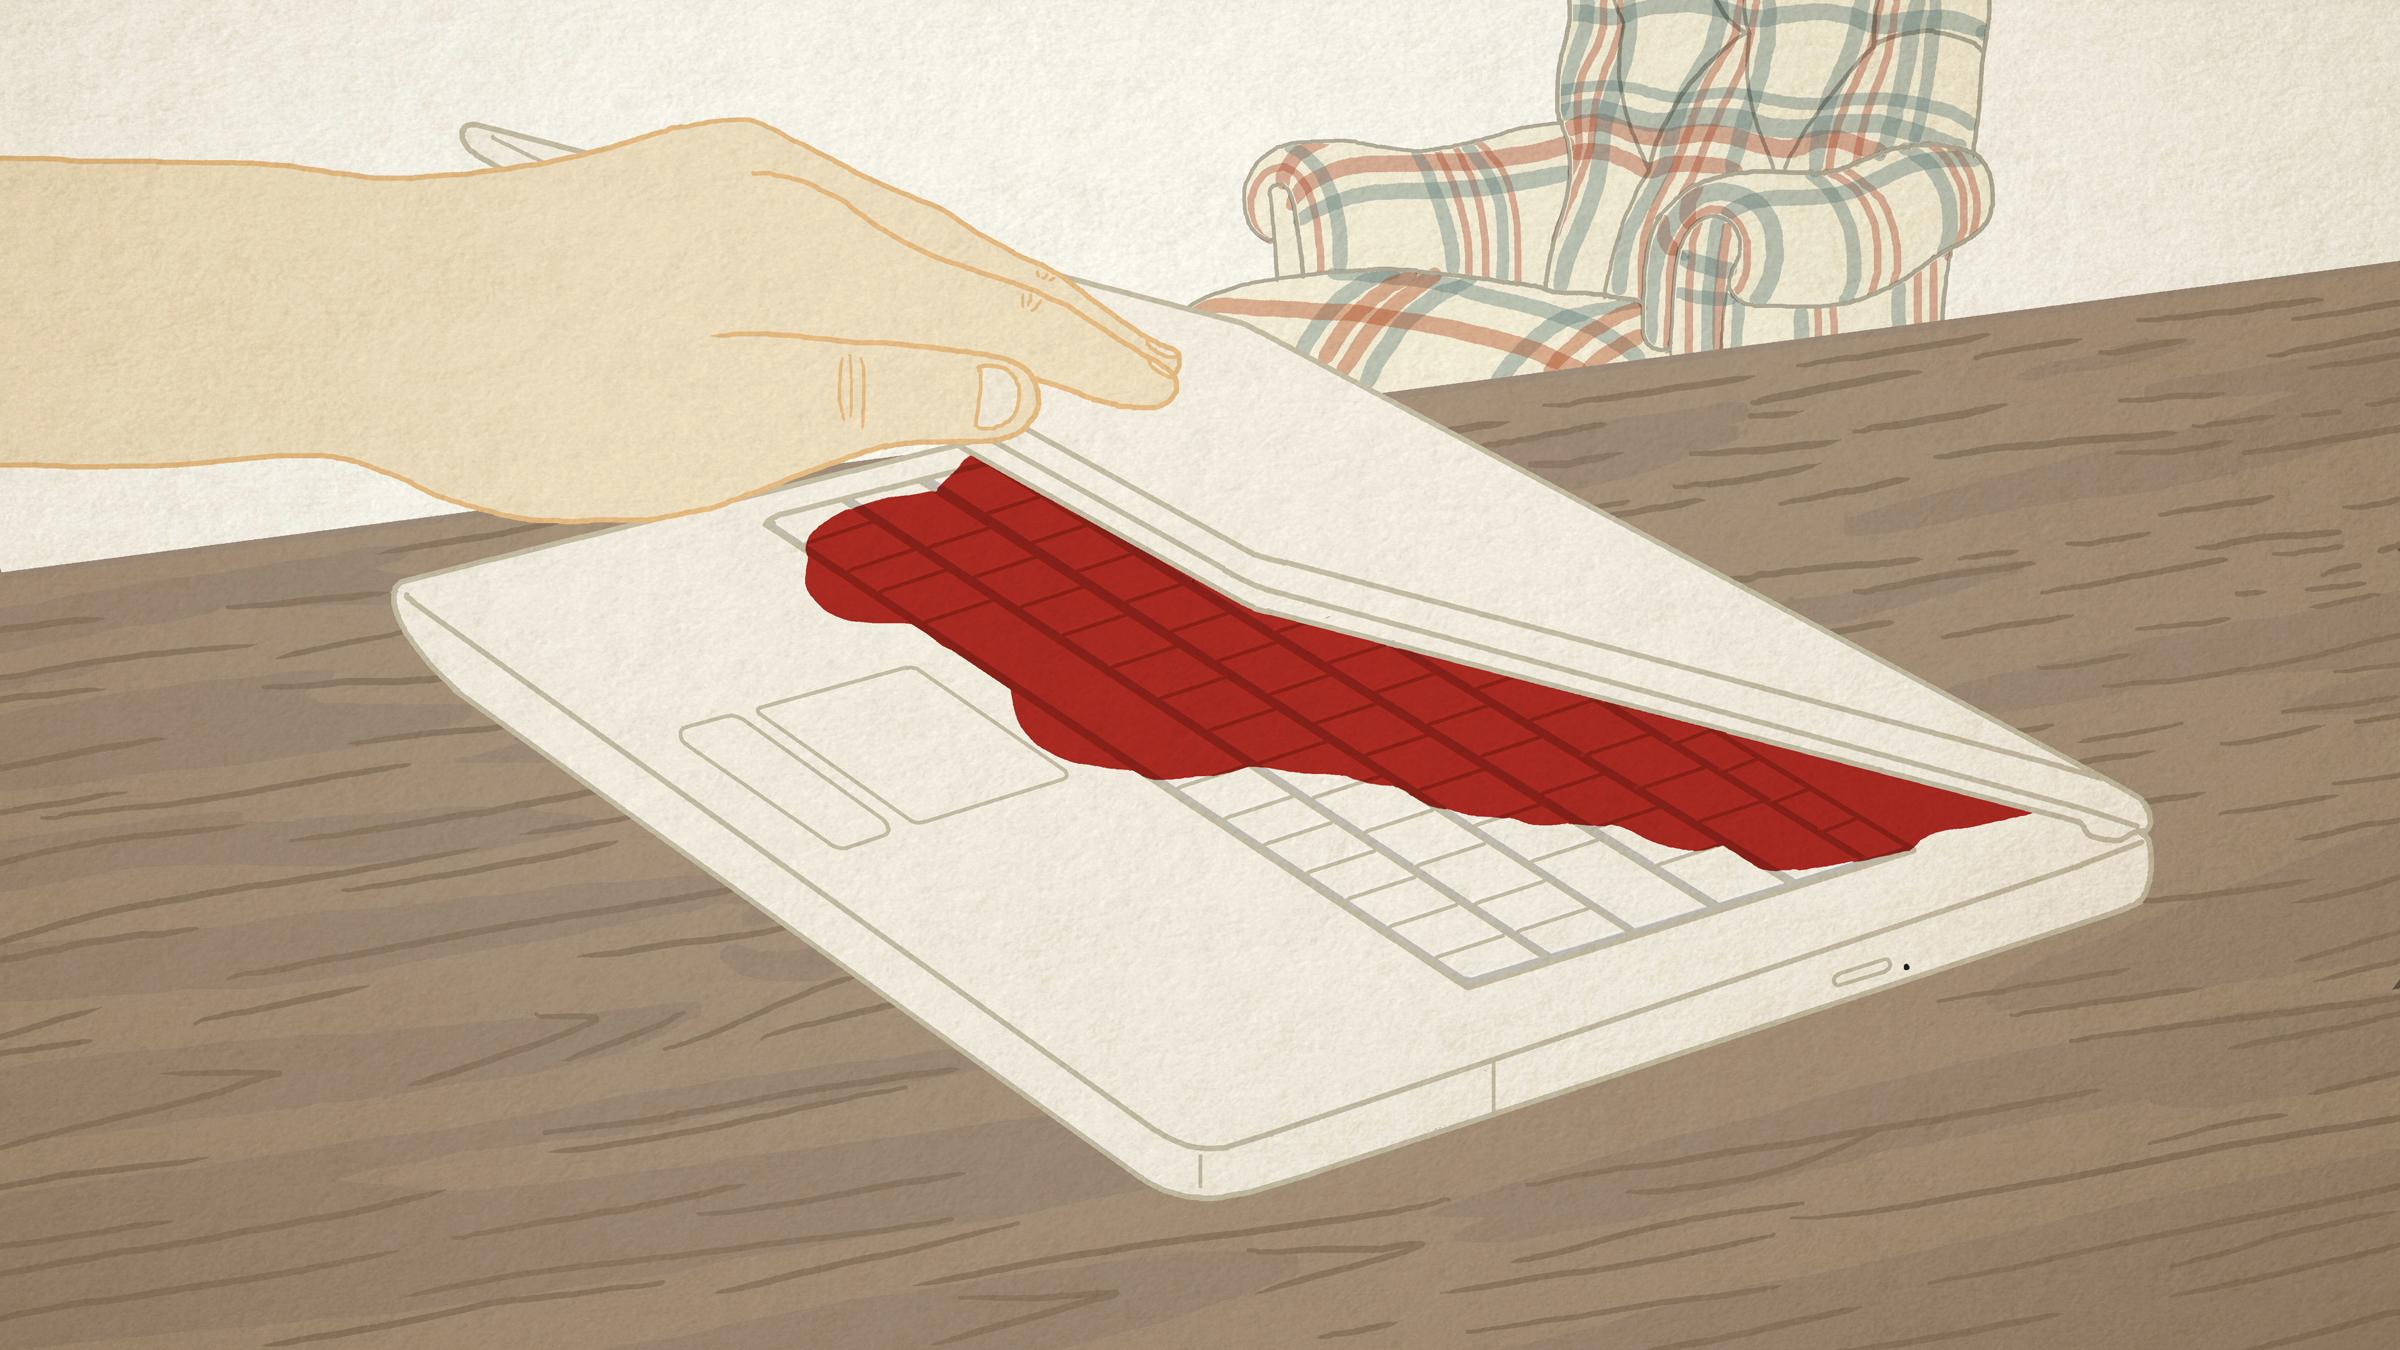 Illustration: a hand closes a laptop